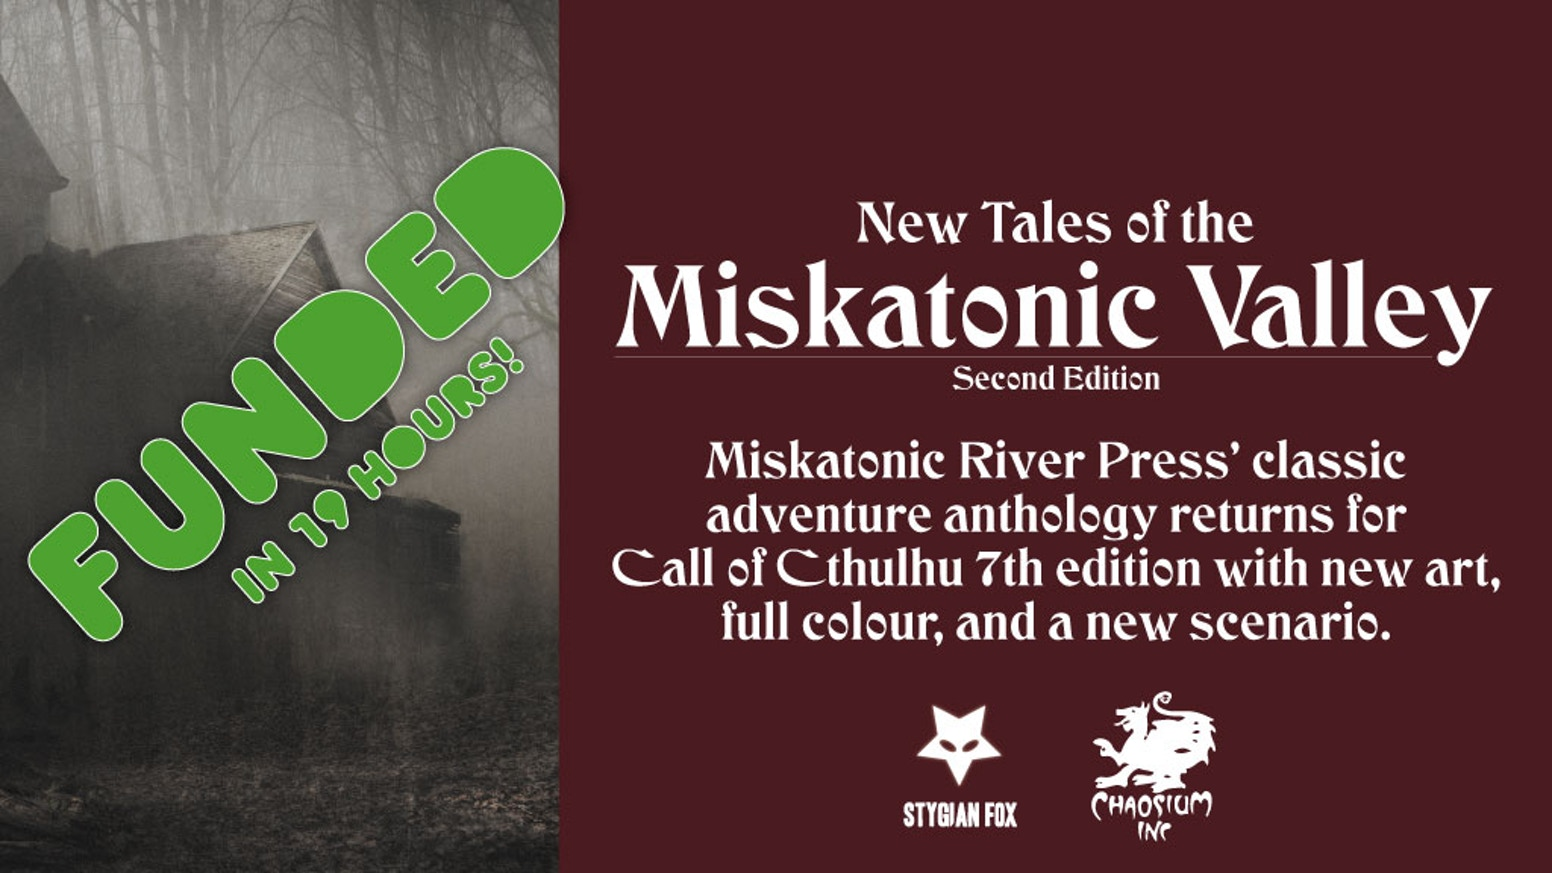 New Tales From Miskatonic Valley 2nd Edition Produced Under License For The Call Of